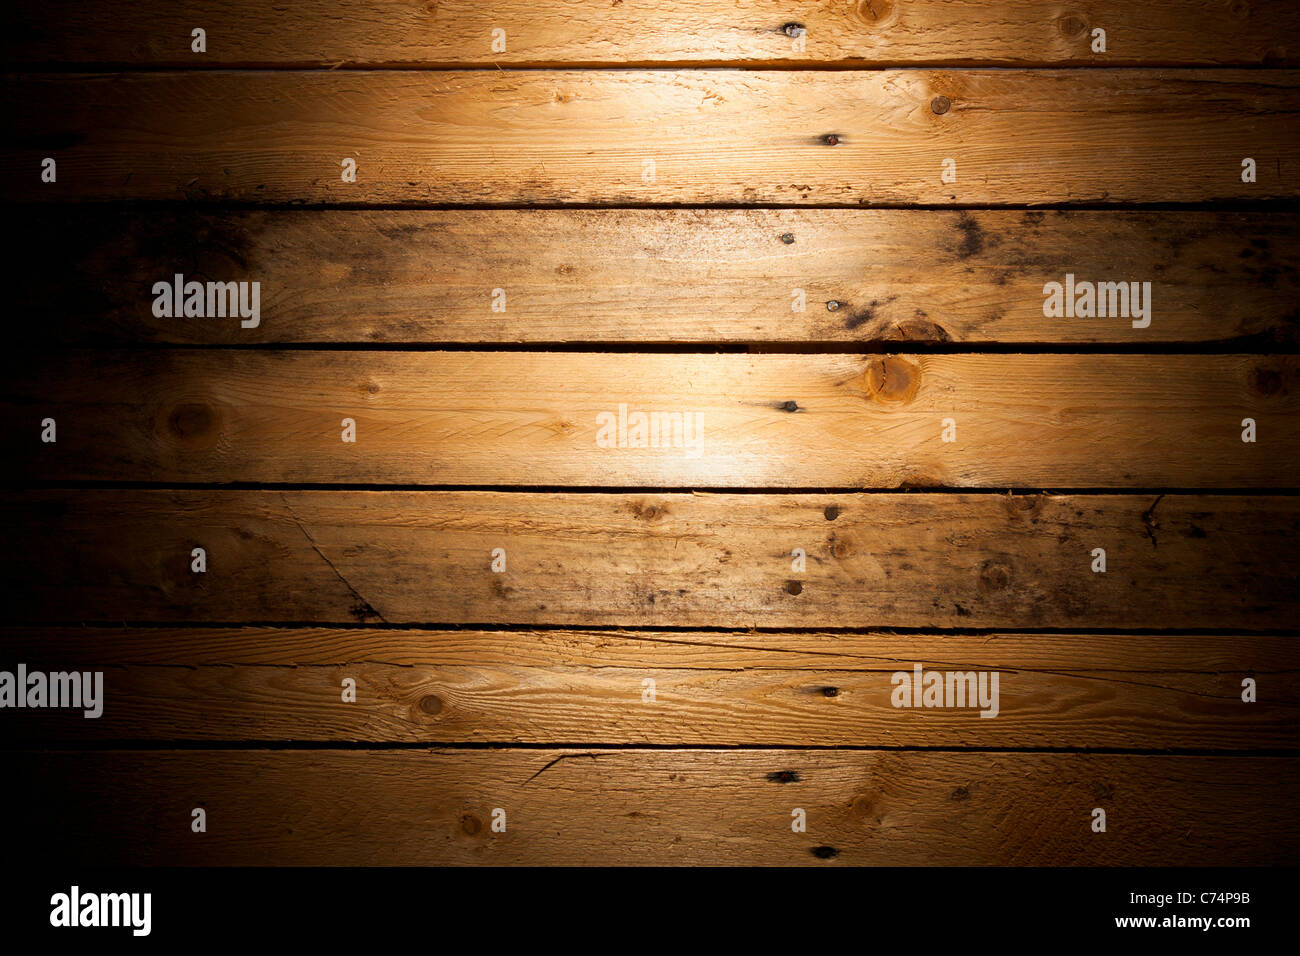 Pine Wood (Deal) Texture with Vignette - Stock Image